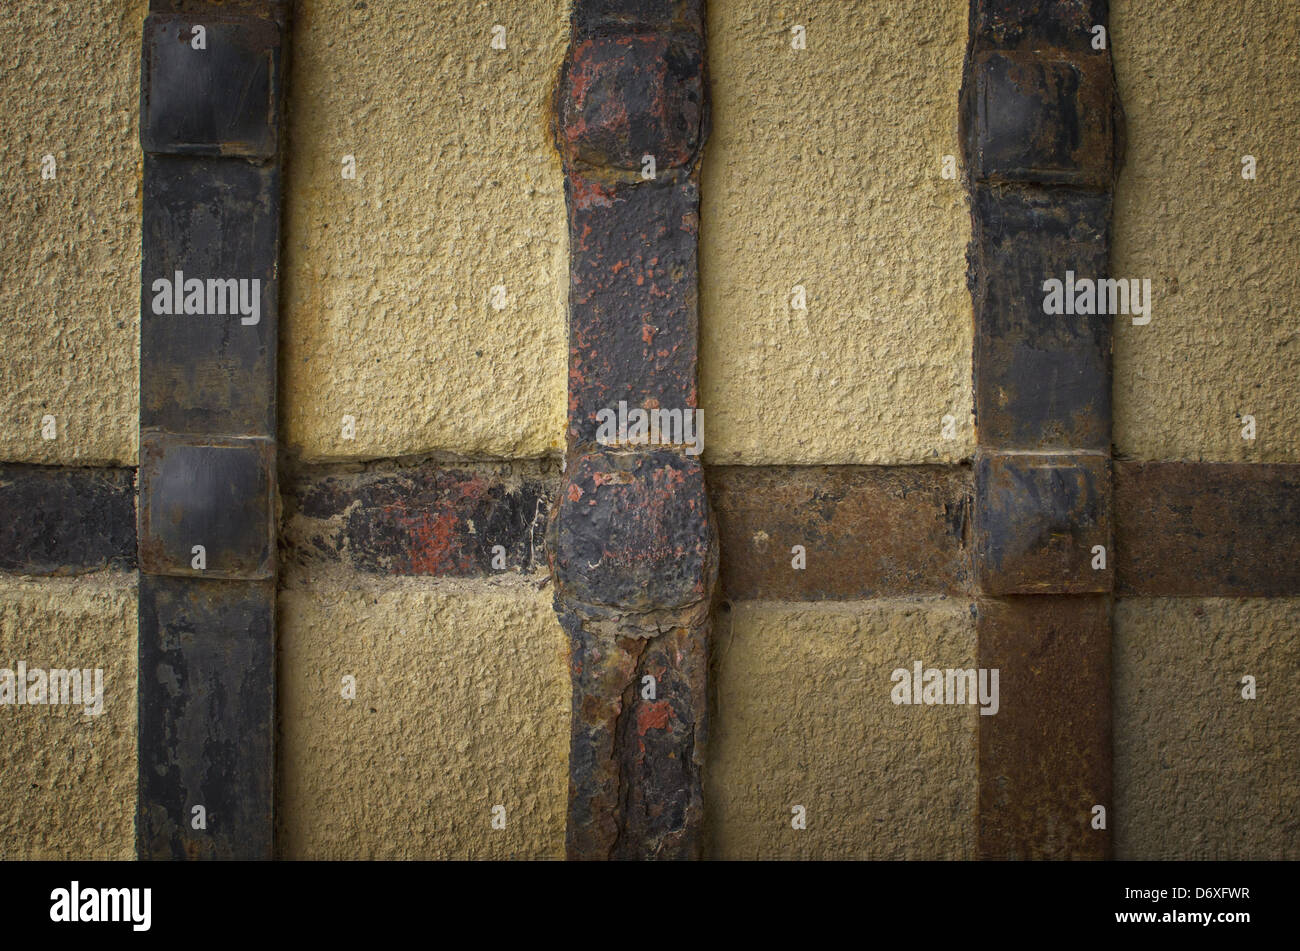 Old aged concrete church wall with iron handcraft deco work. - Stock Image